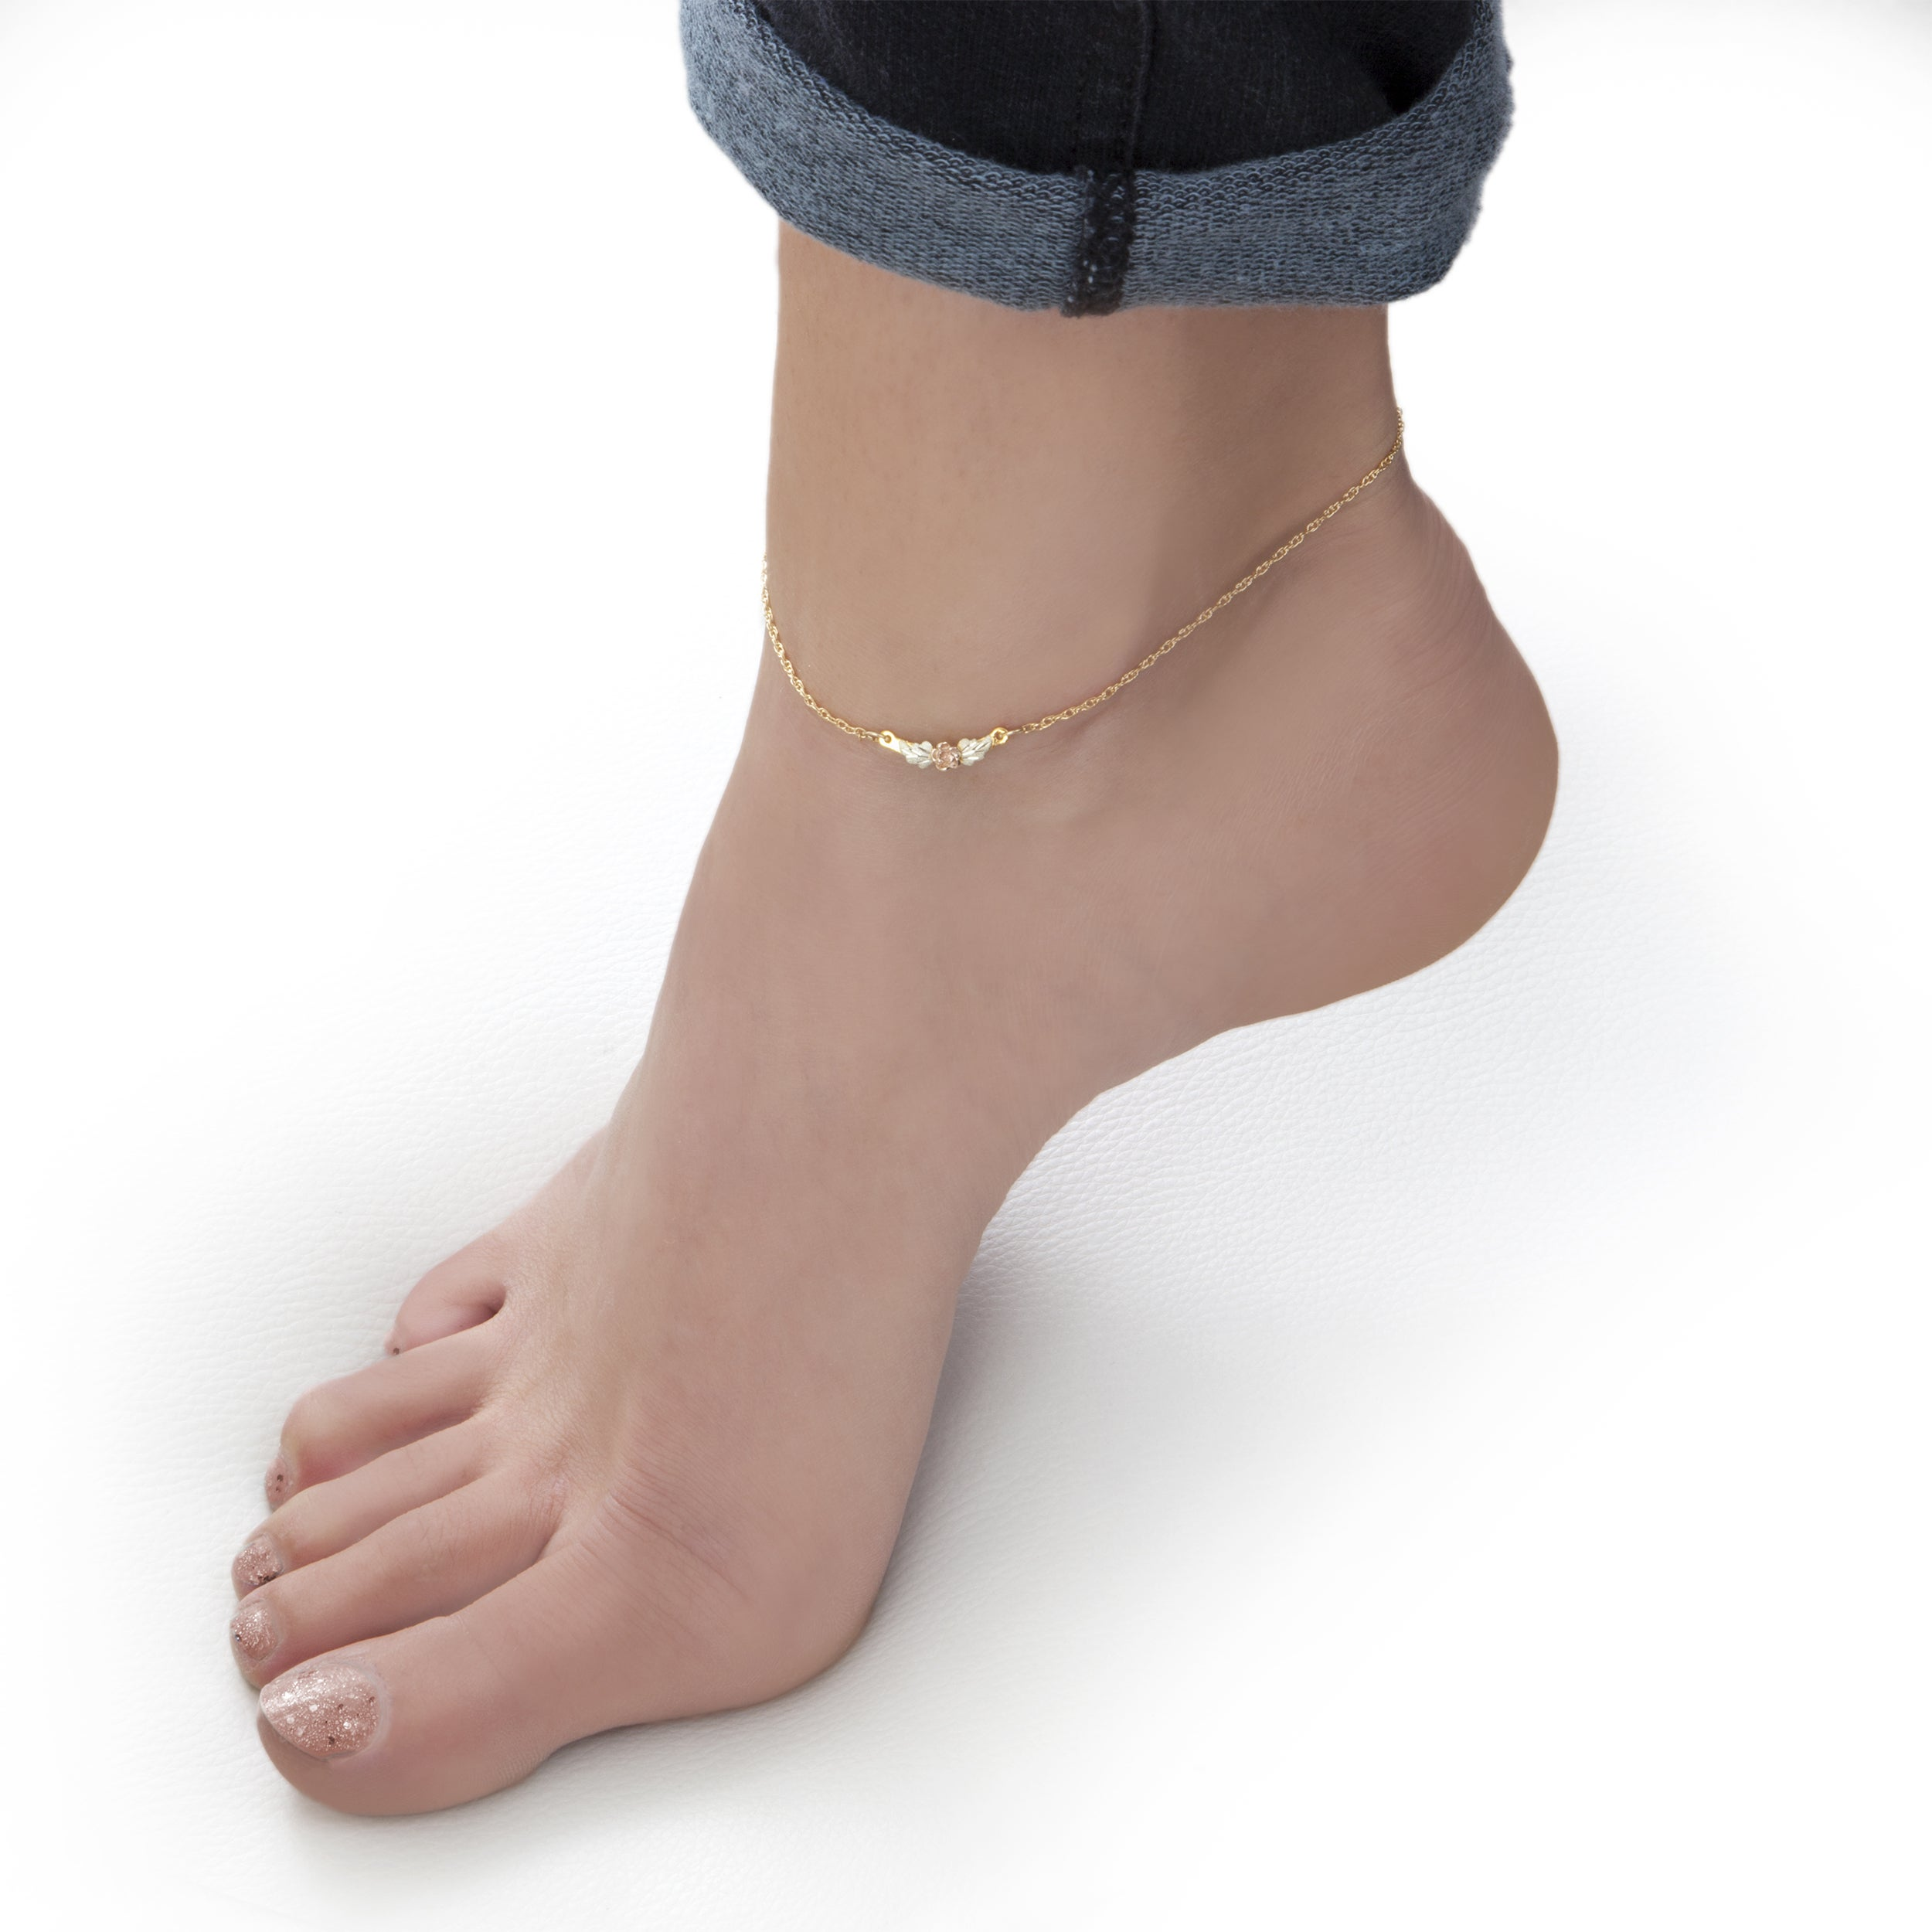 pin angel can gold runners bird where bracelets ankle by anklet wing i buy briguysgirls jewelry bracelet